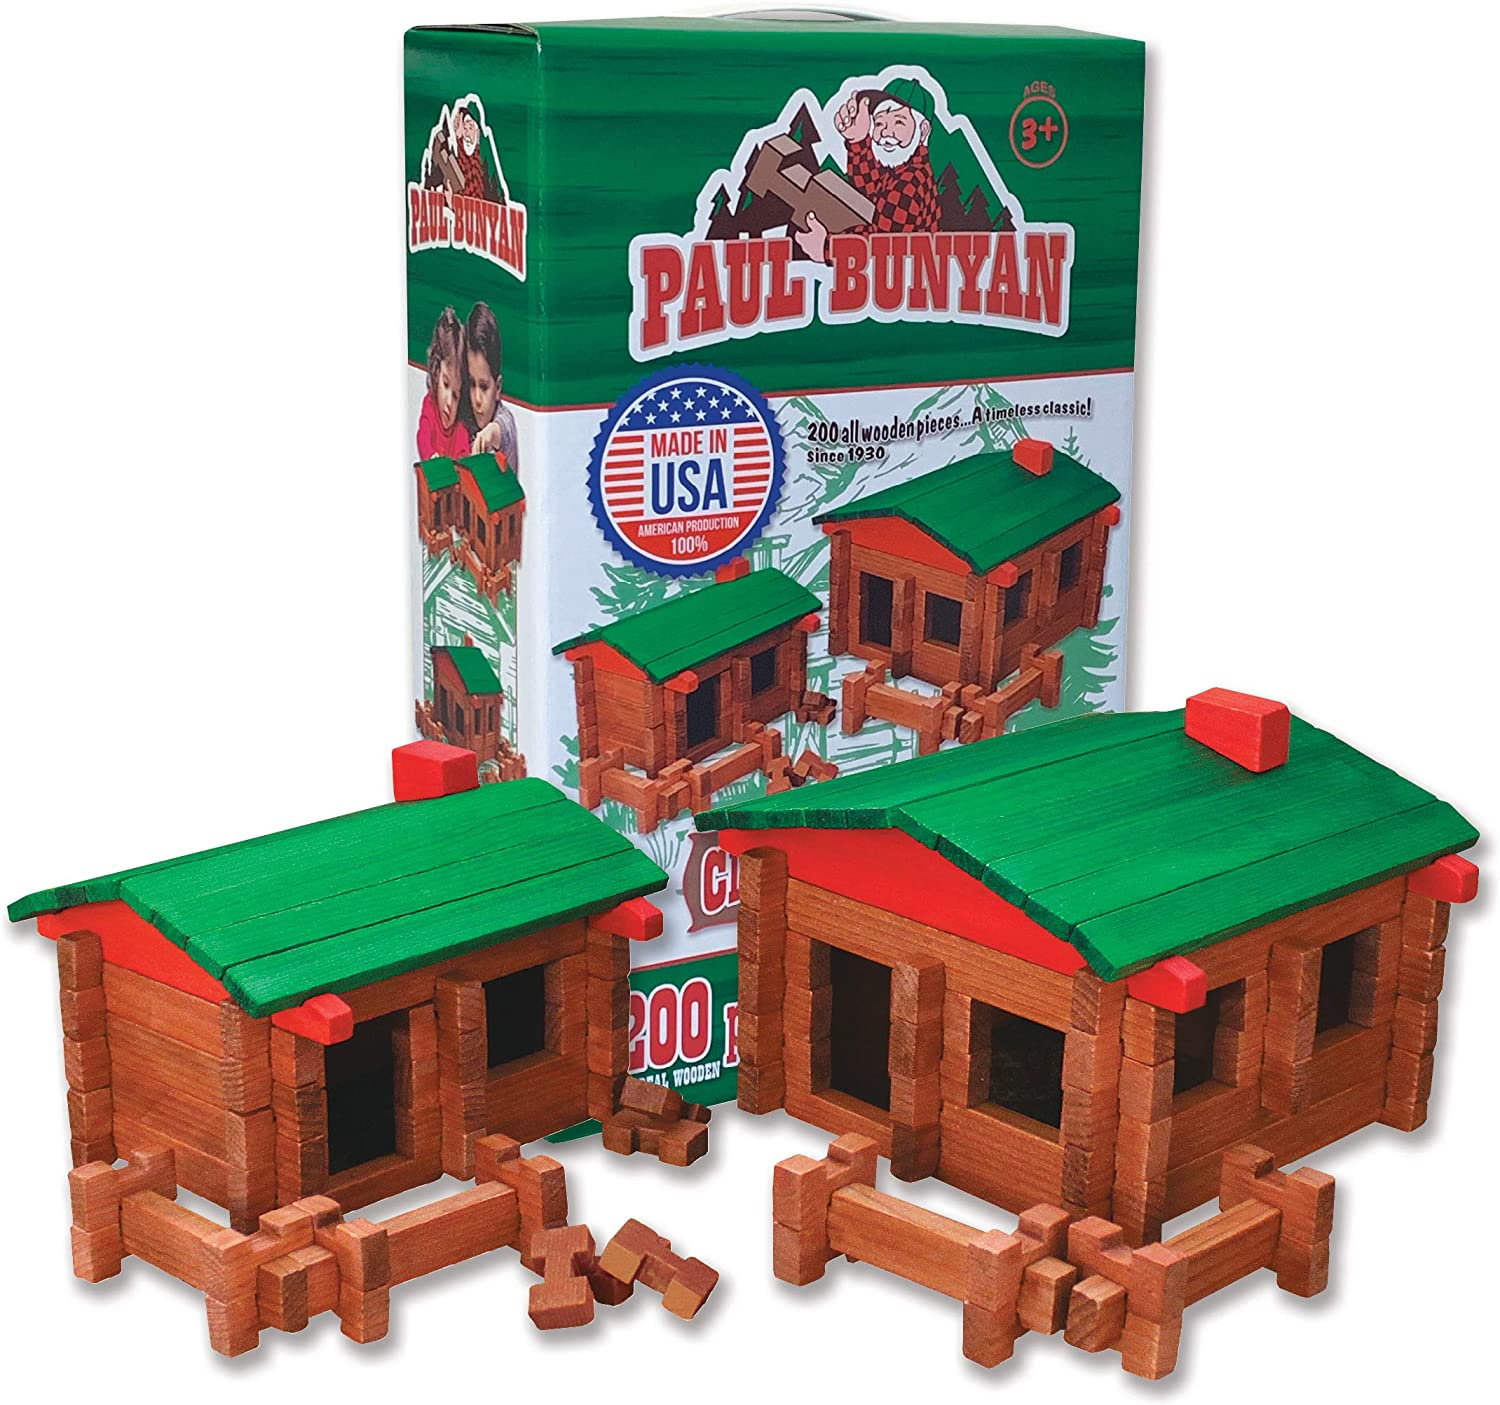 Paul Bunyan 200 pc. Deluxe Log Building Set, Made in The USA!: Toys & Games